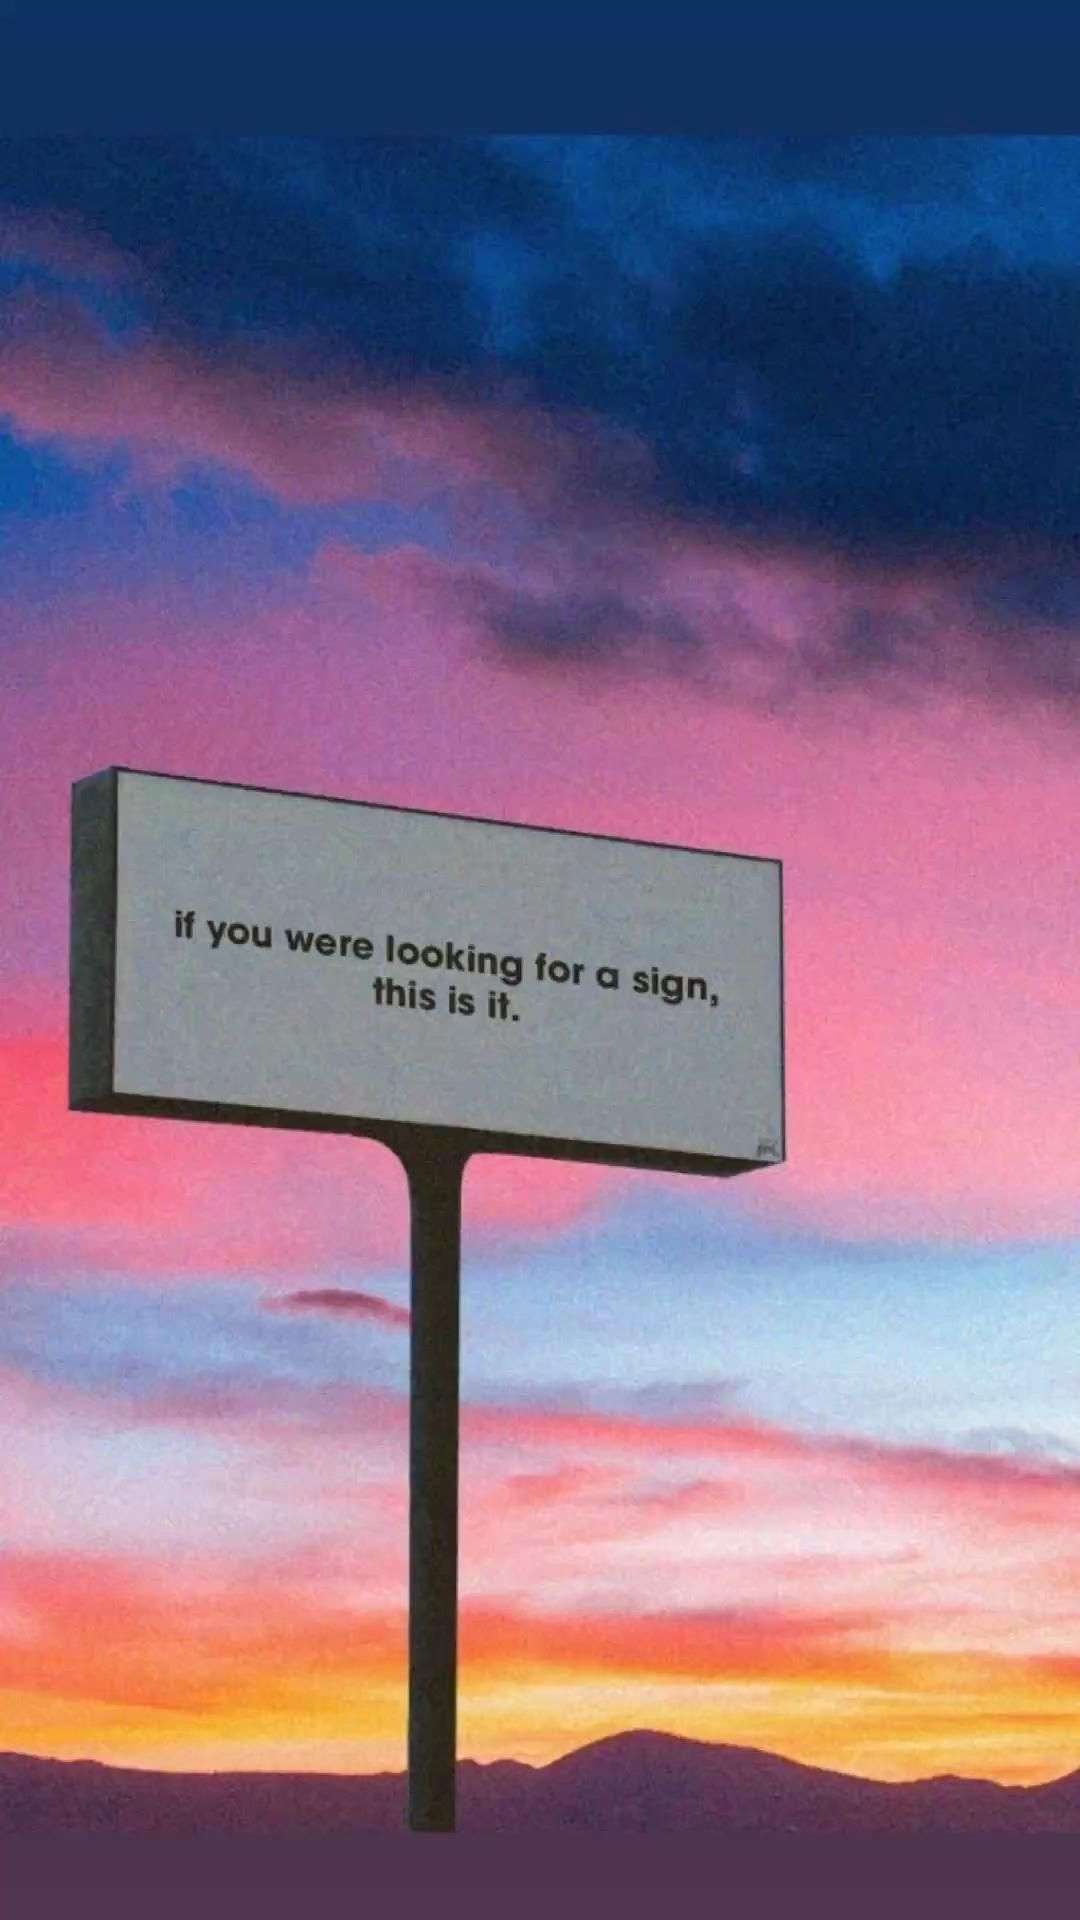 𝒜𝒹. 𝒱𝒾𝓃𝓉𝓏𝑜𝓃𝑒 🤳✨ AESTHETIC DESIGN QUOTES WALLPAPERS SKY SIGN